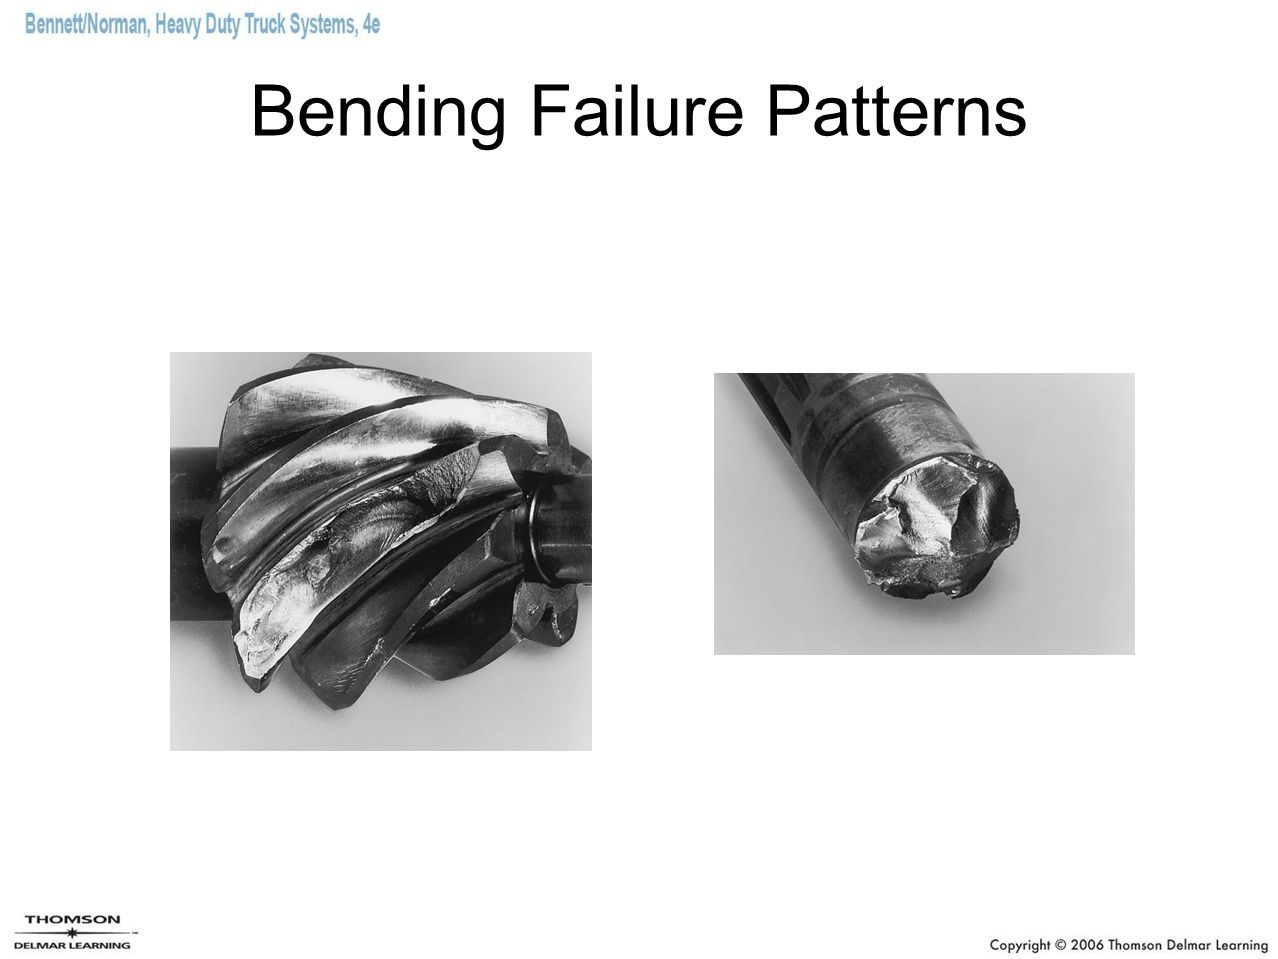 Bending Failure Patterns